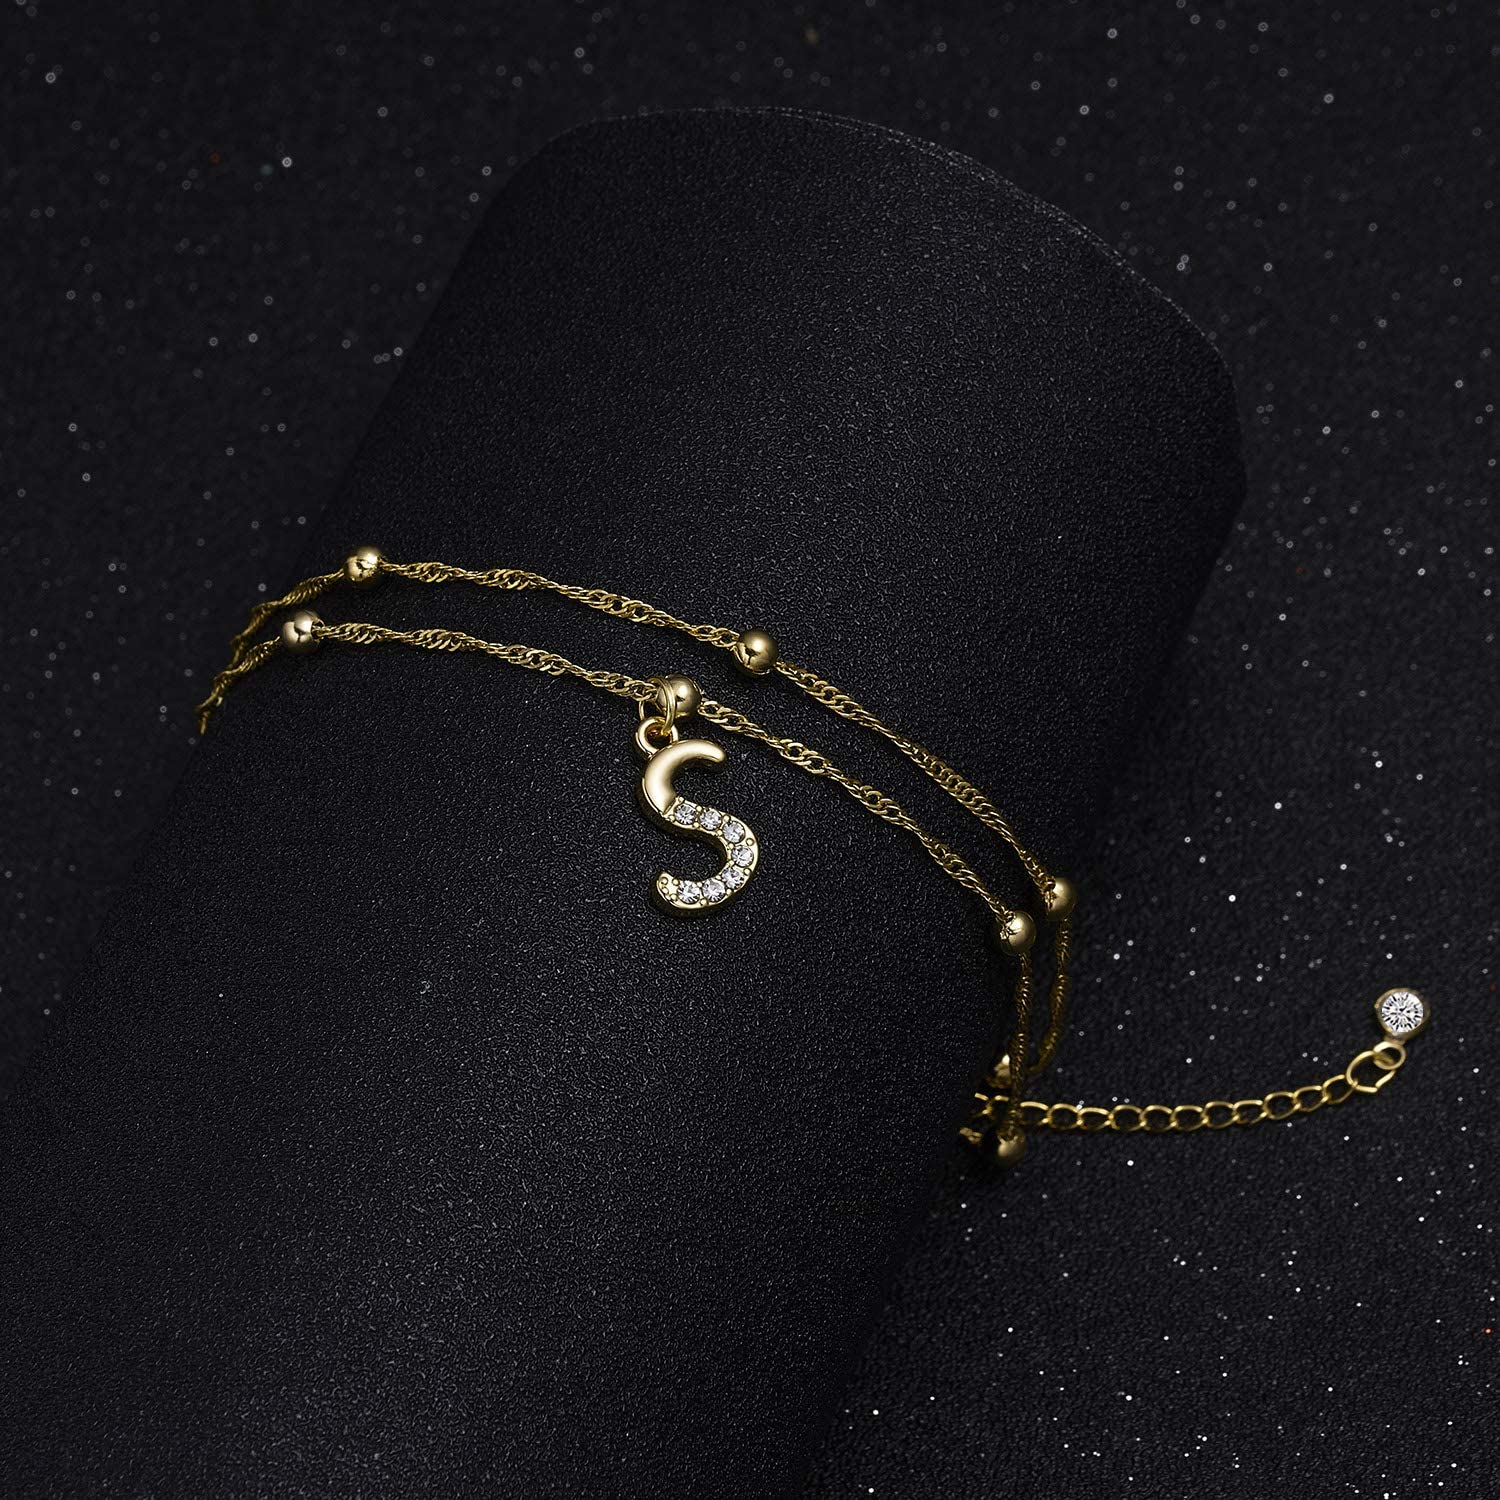 RINHOO Initial Ankle Bracelets 14K Gold Plated Crystal Double Layered Beaded A-Z Alphabet Ankle Bracelets for Women Teen Girls Jewelry